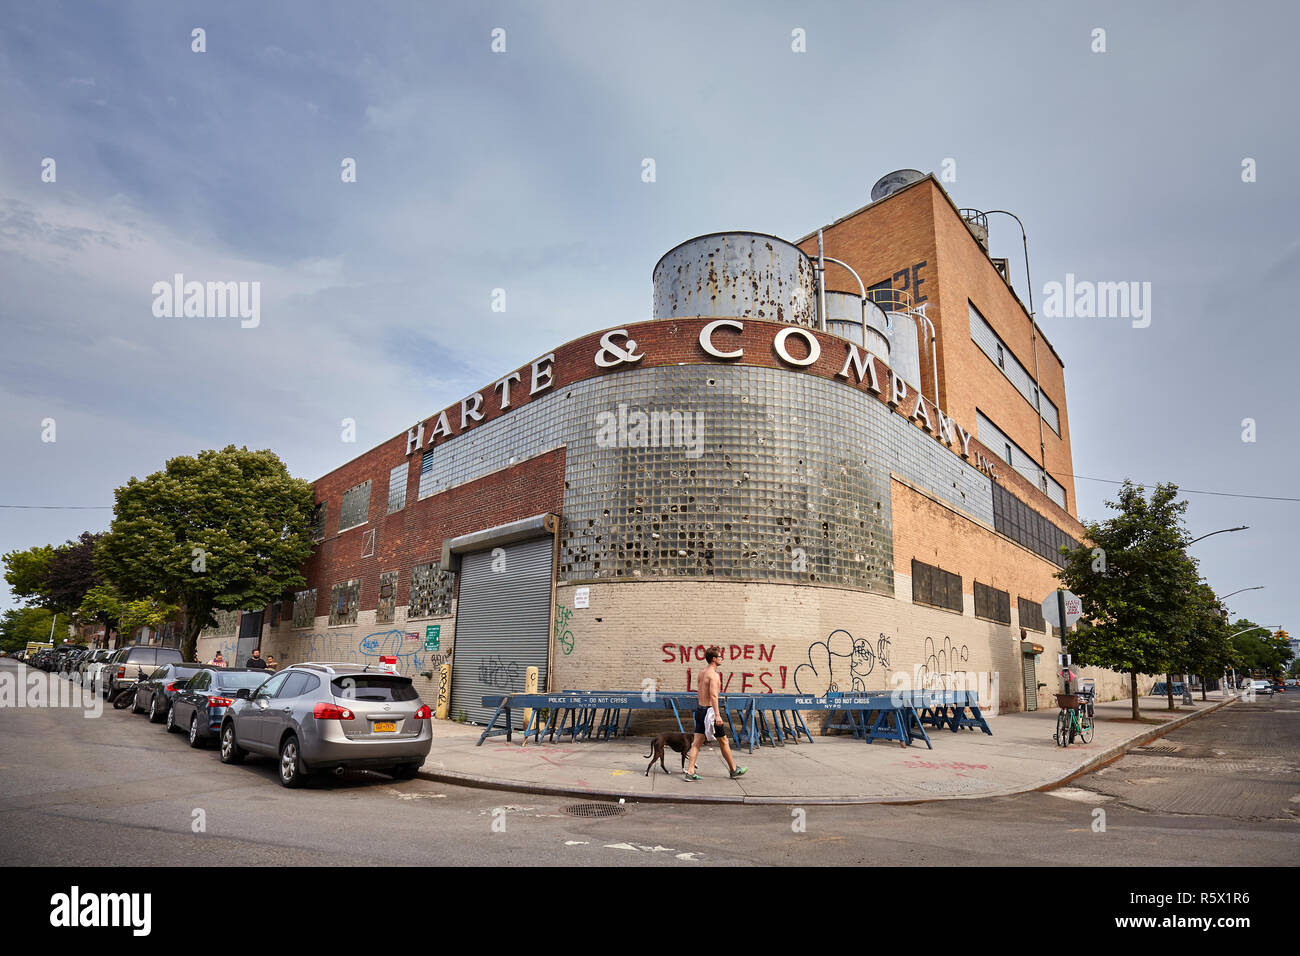 New York, USA - July 04, 2018: Harte & Company former factory, one of the Greenpoint iconic buildings. - Stock Image